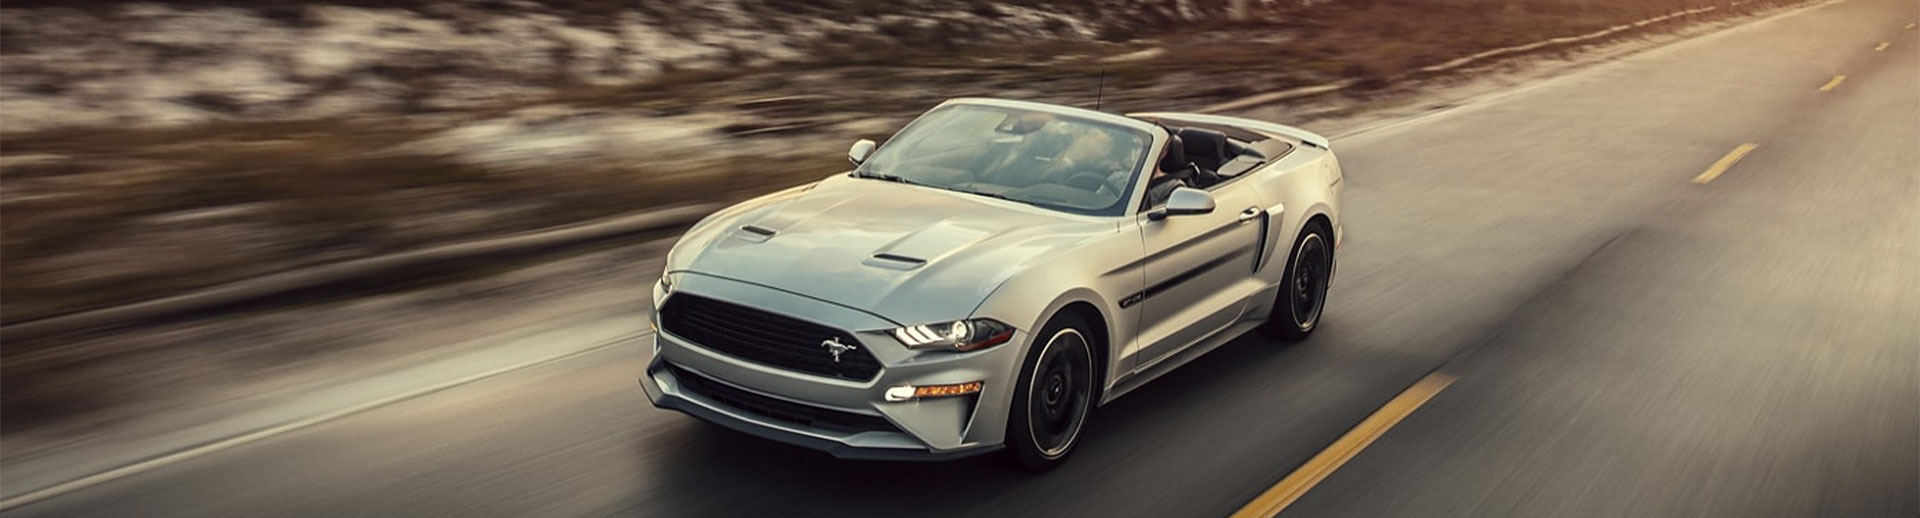 2021 Ford Mustang Lifestyle Photo